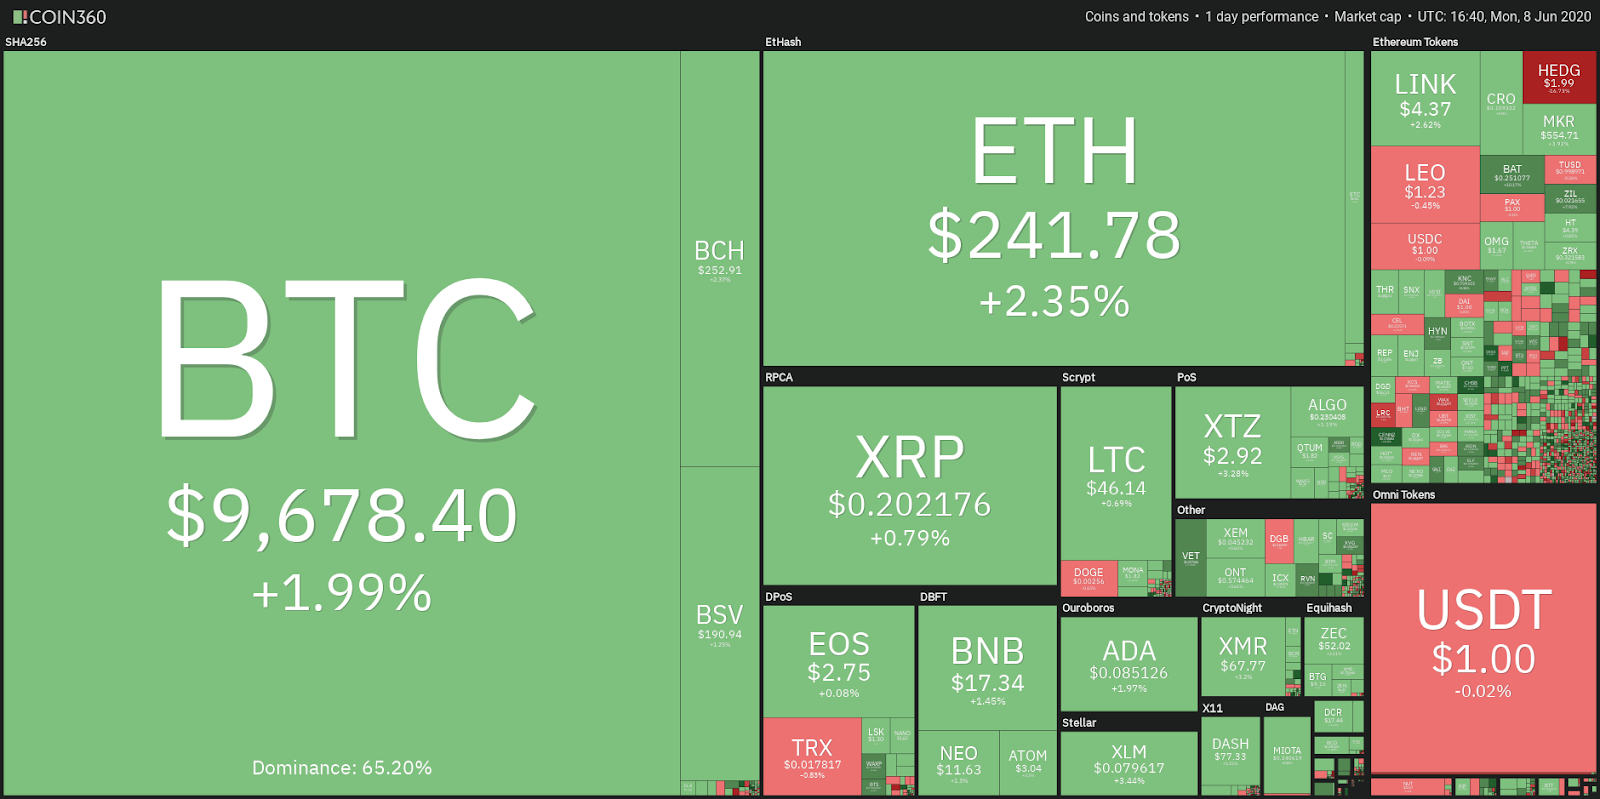 bch cryptocurrency price